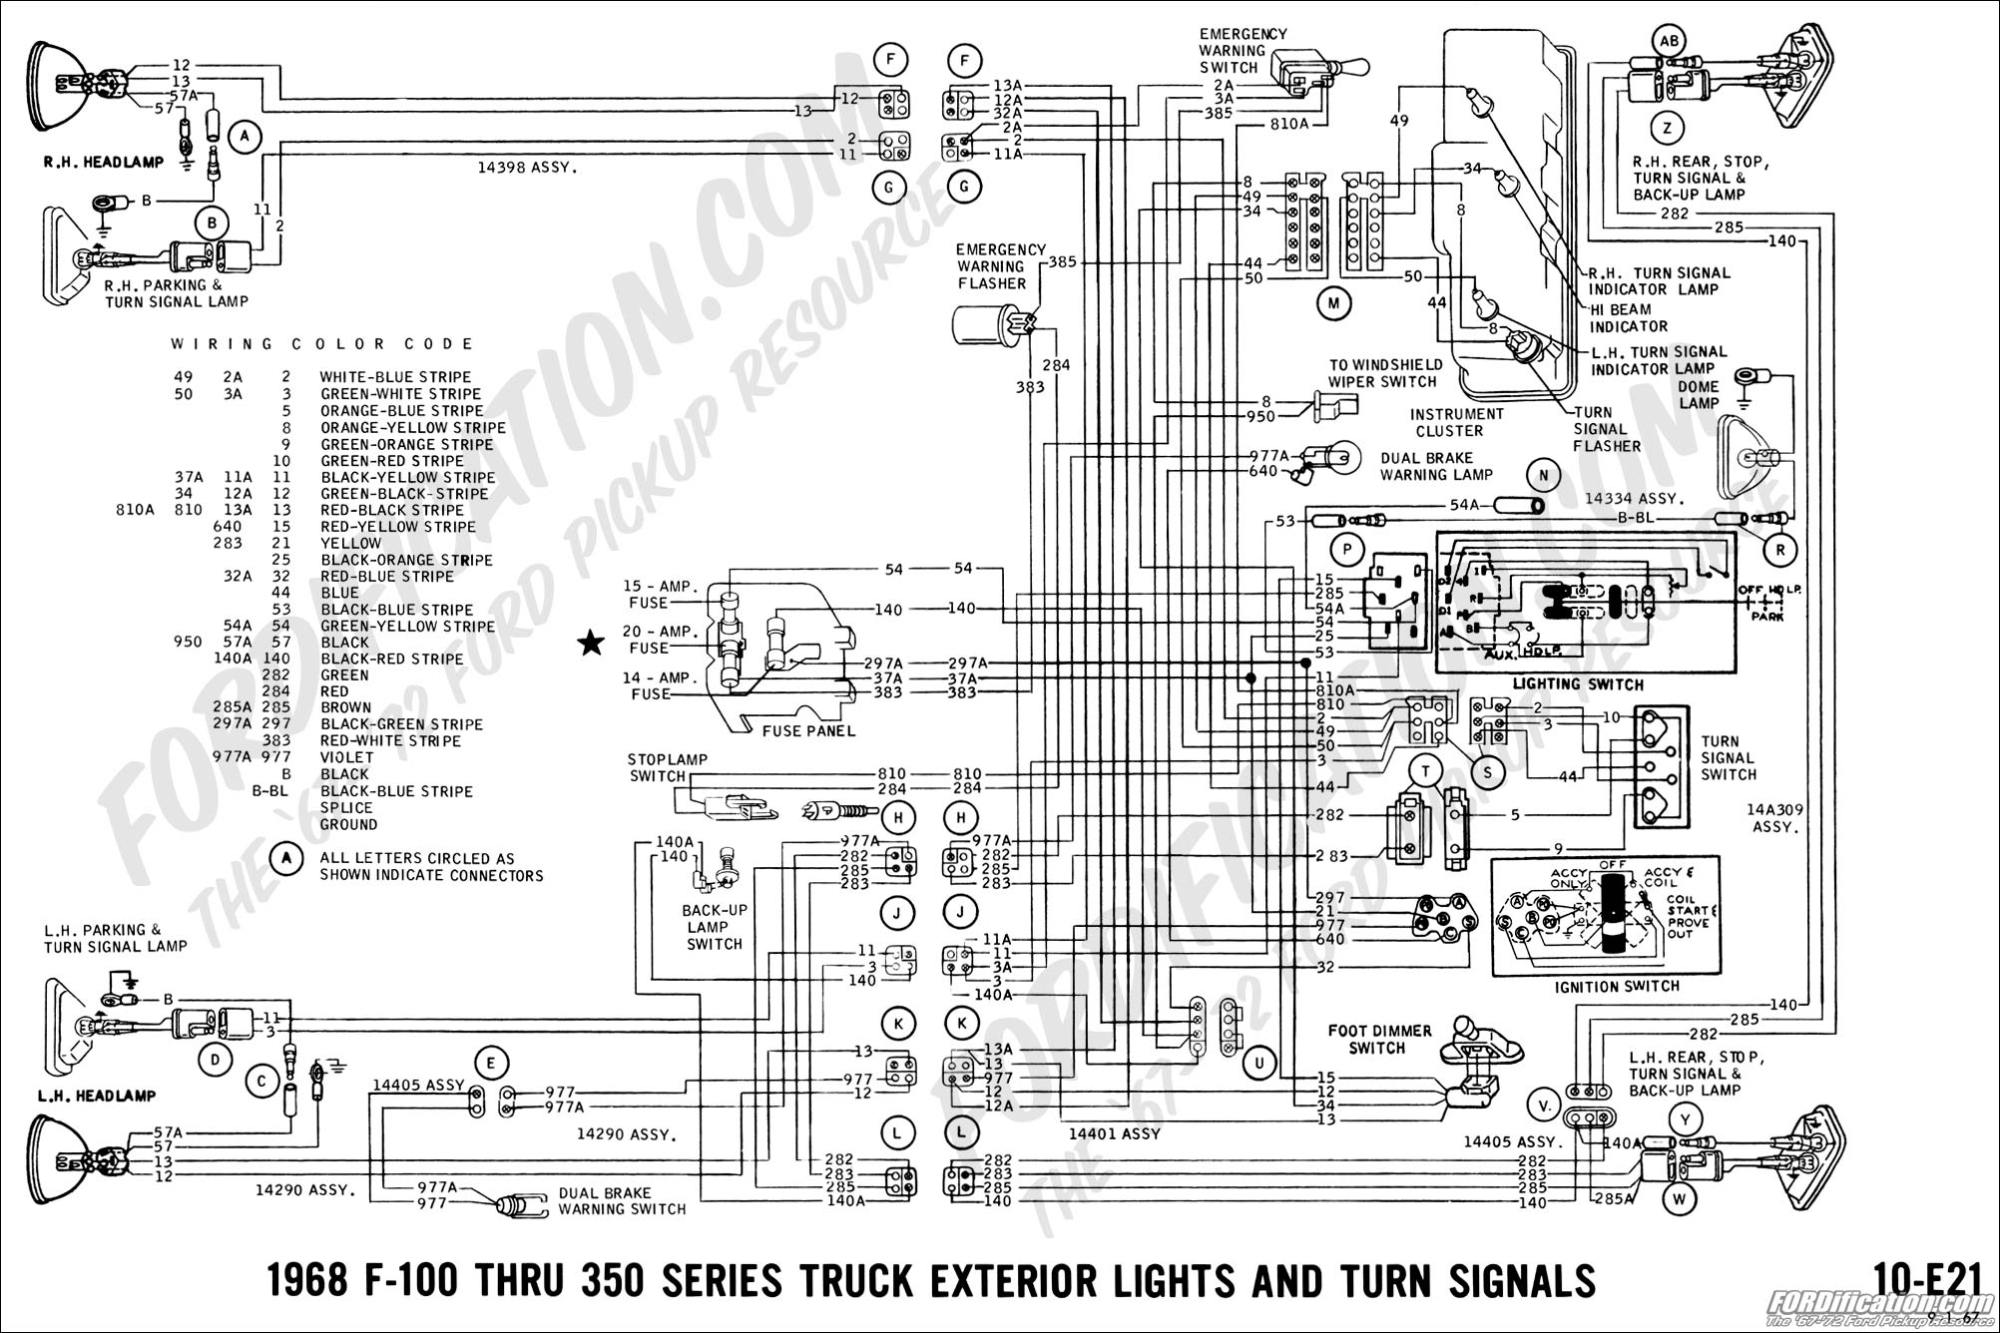 hight resolution of turn signal wiring f700 simple wiring post rh 29 asiagourmet igb de 5 pin relay wiring diagram turn signal switch wiring diagram